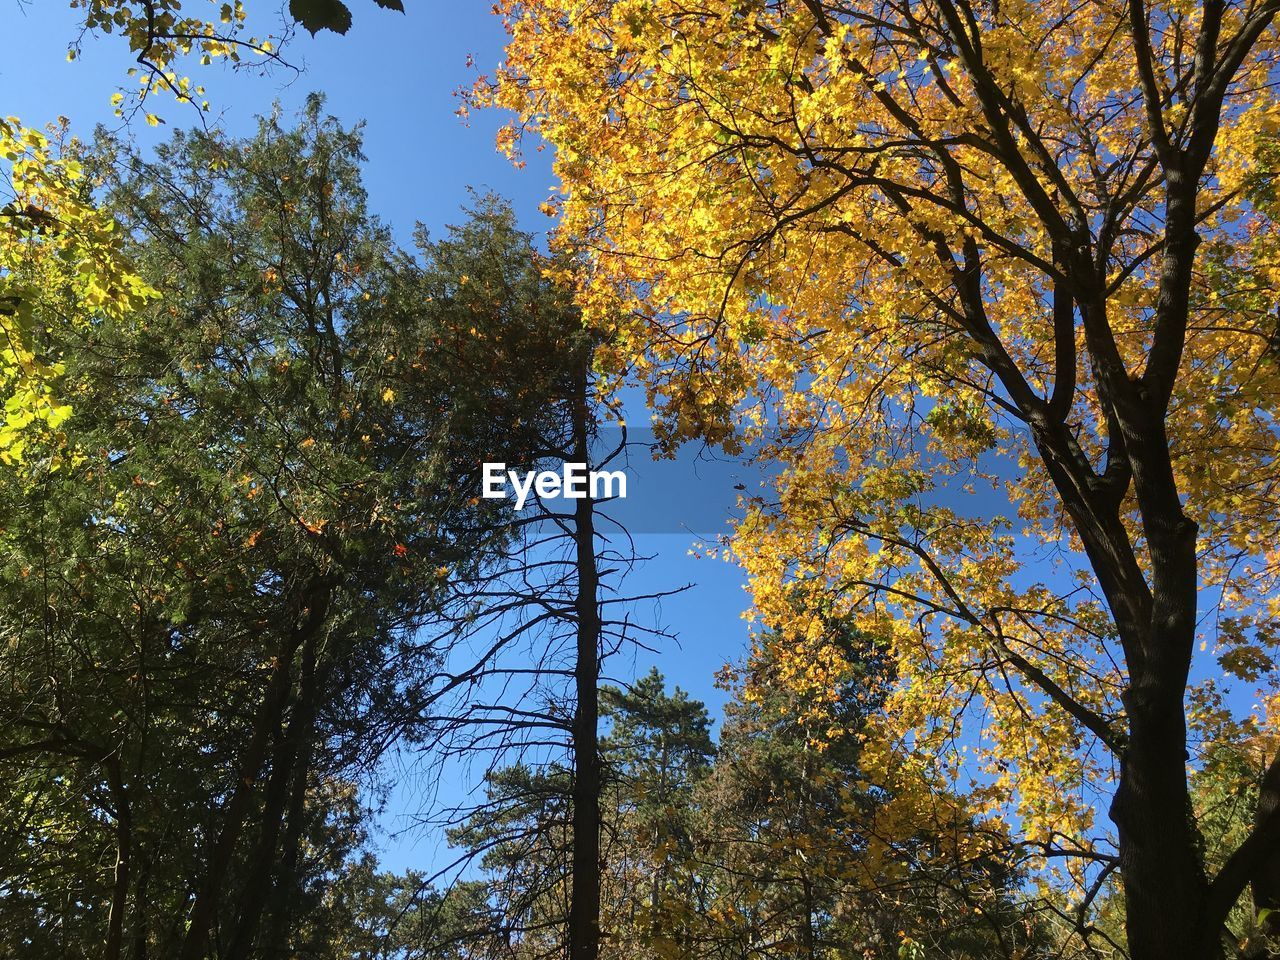 tree, growth, nature, low angle view, autumn, no people, beauty in nature, day, branch, tranquility, tree trunk, outdoors, forest, sky, clear sky